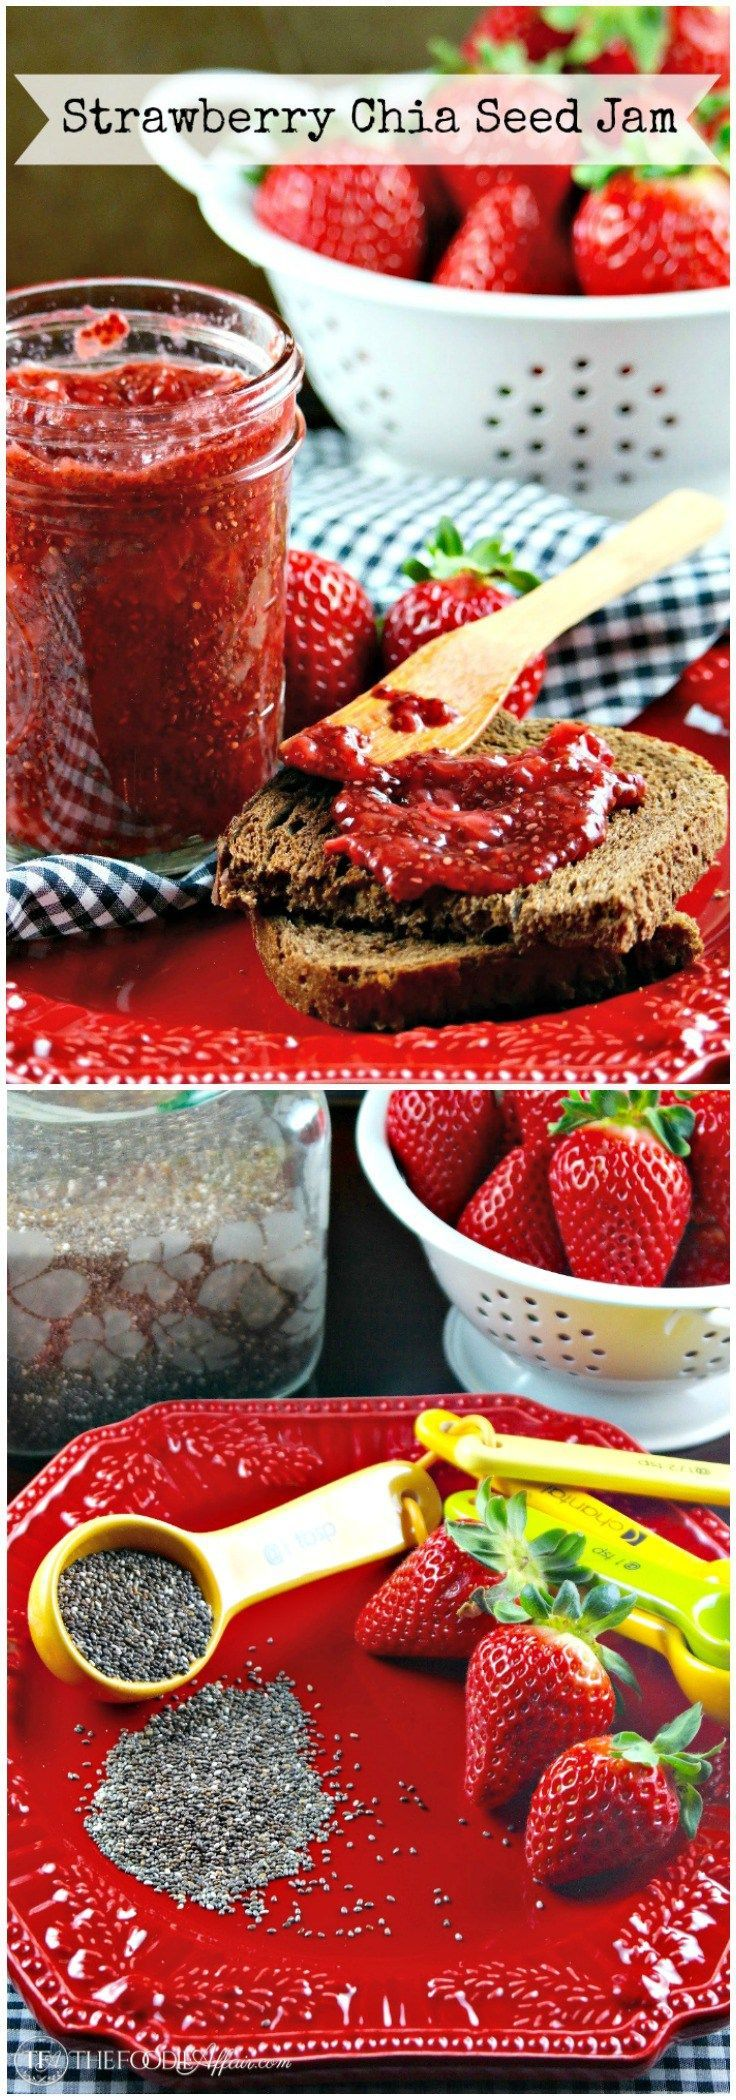 Easy Strawberry Chia Seed Jam is made without refined sugar and takes less than 15 minutes to make! Chia is a nutritional powerhouse adding protein, fiber and Omega-3s to your diet. The Foodie Affair